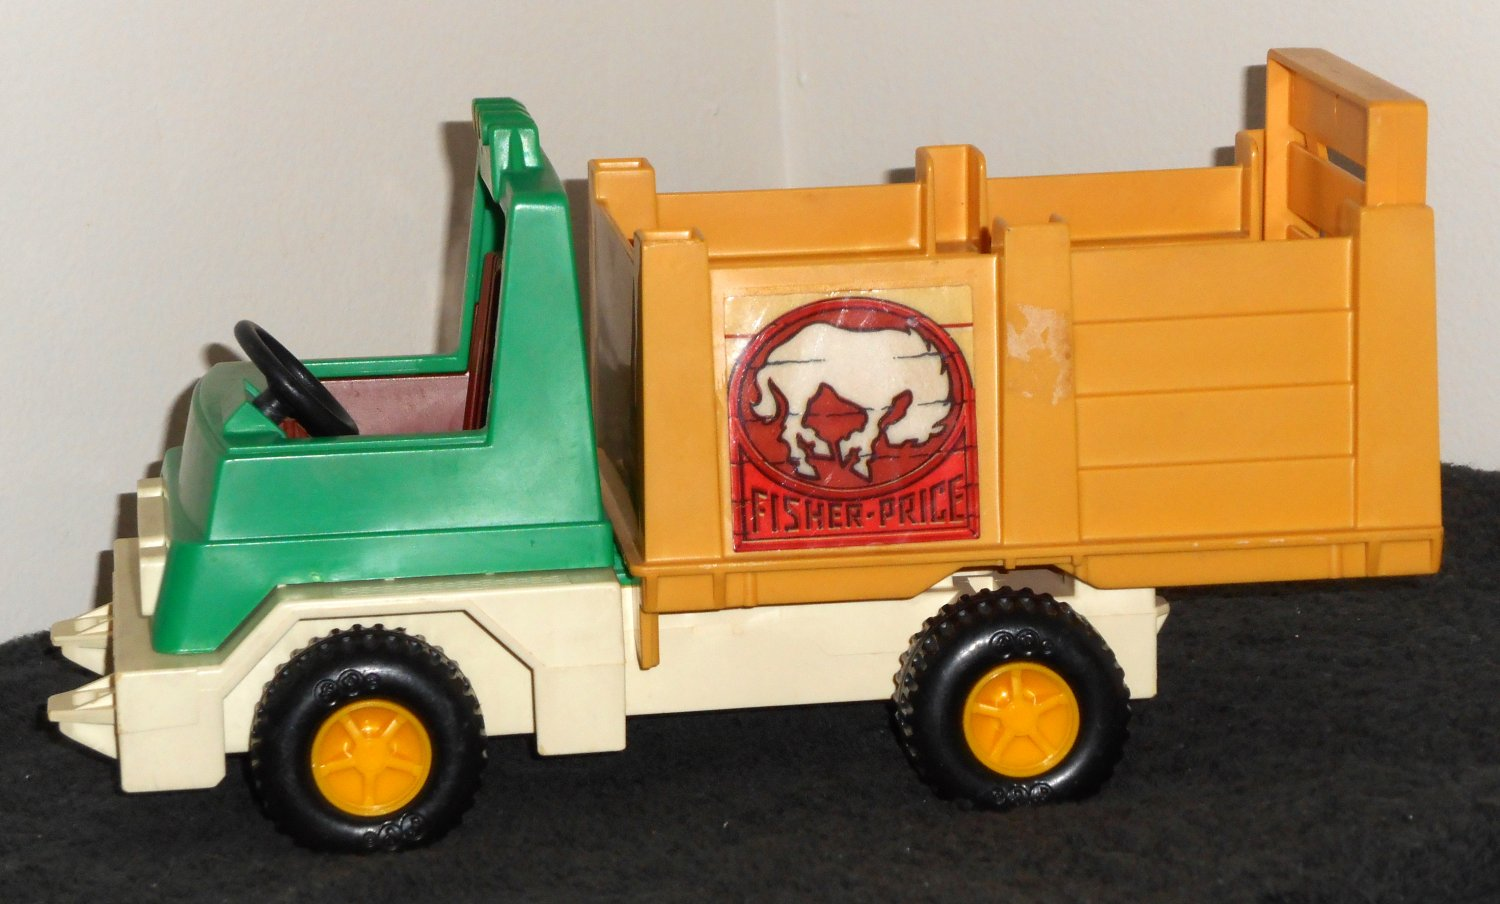 Vintage Fisher Price Rodeo Rig Vehicle Truck 330 FP 1979